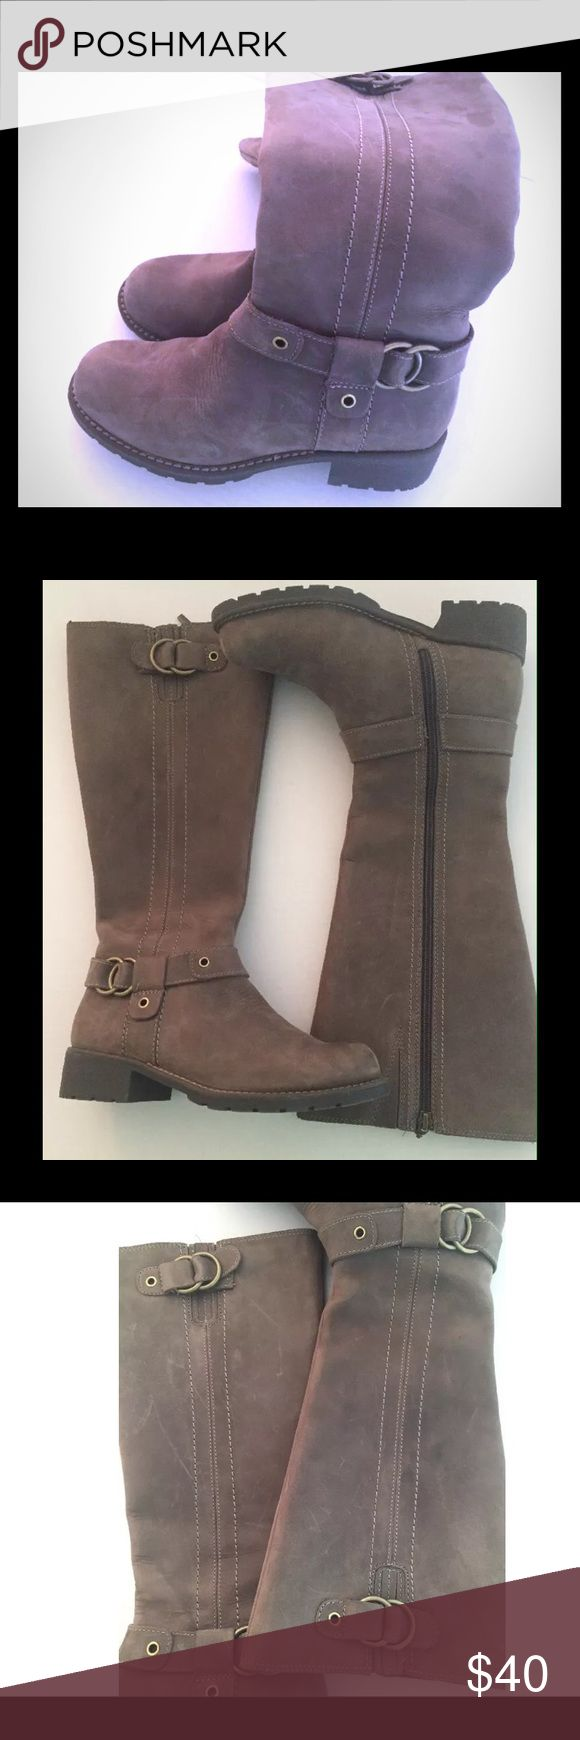 CLARKS Sz 7 Taupe Distressed Suede Riding Boots Beautiful Clarks Boots size 7 in grayish taupe color. Looks very good on bottom has some scuffs. Clarks Shoes Winter & Rain Boots